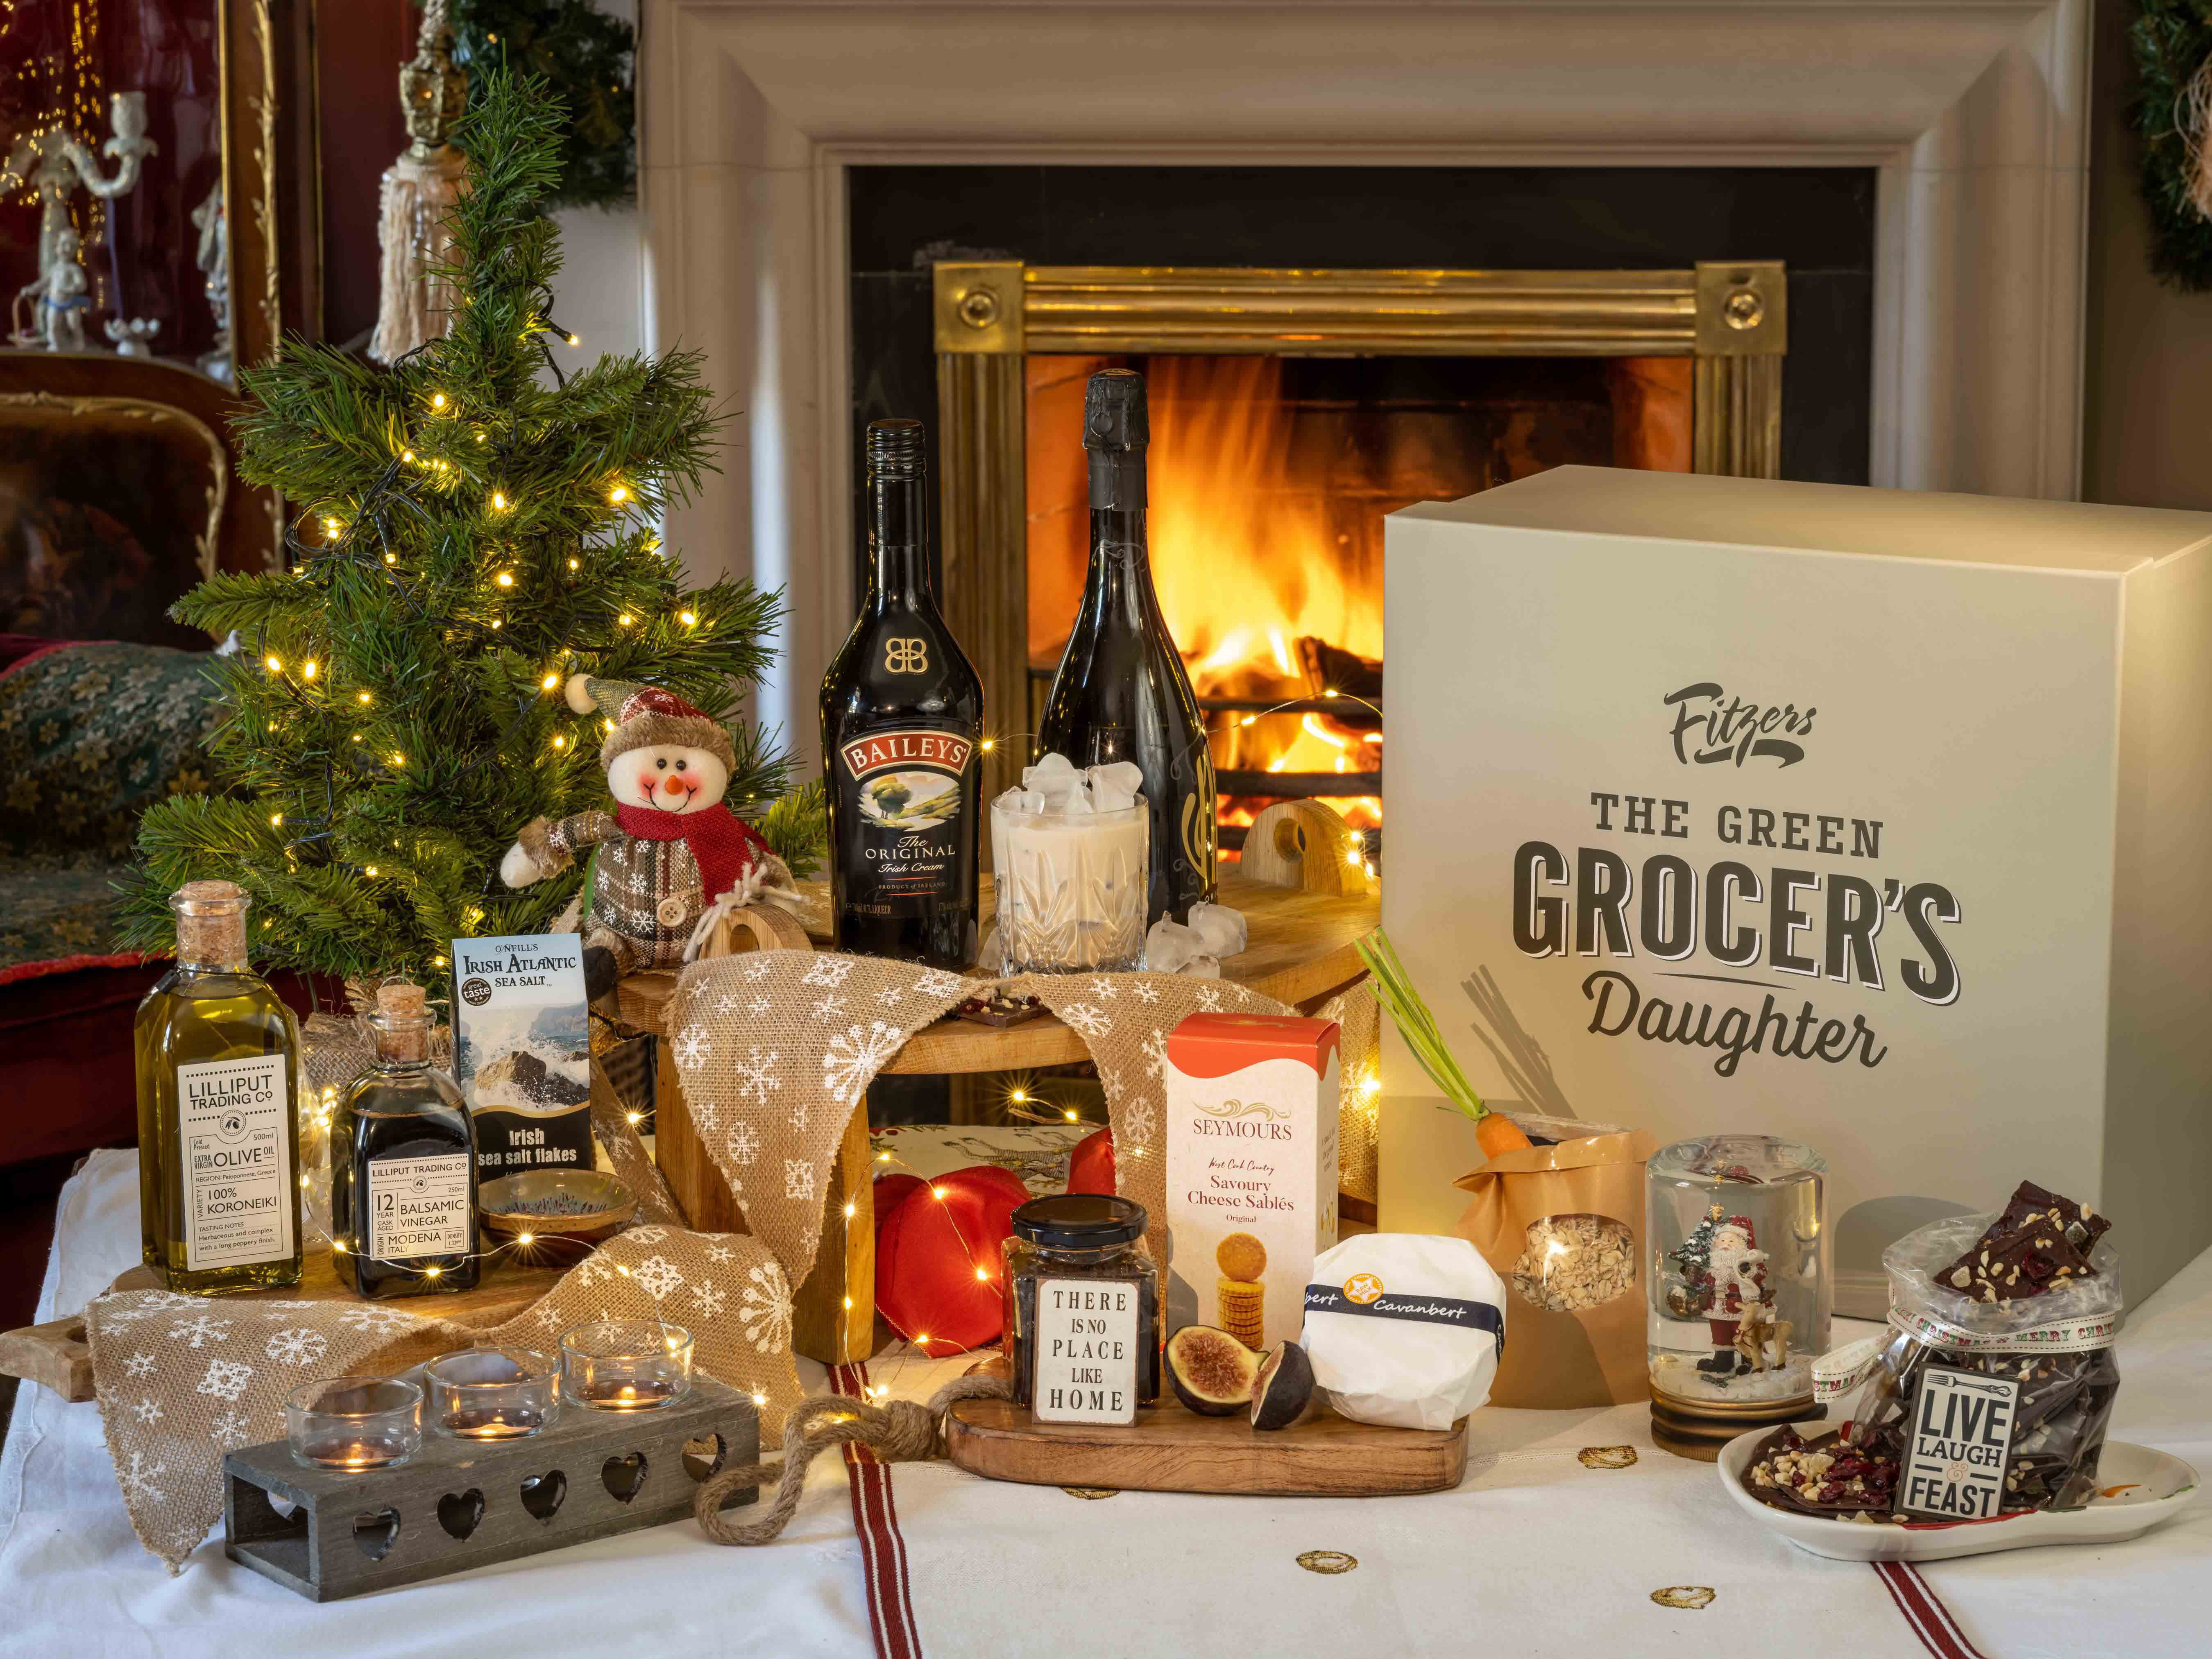 All I want for Christmas is ….. Fitzers Catering's Green Grocer's Daughter Luxury Hampers and Nurish Christmas Party In A Box